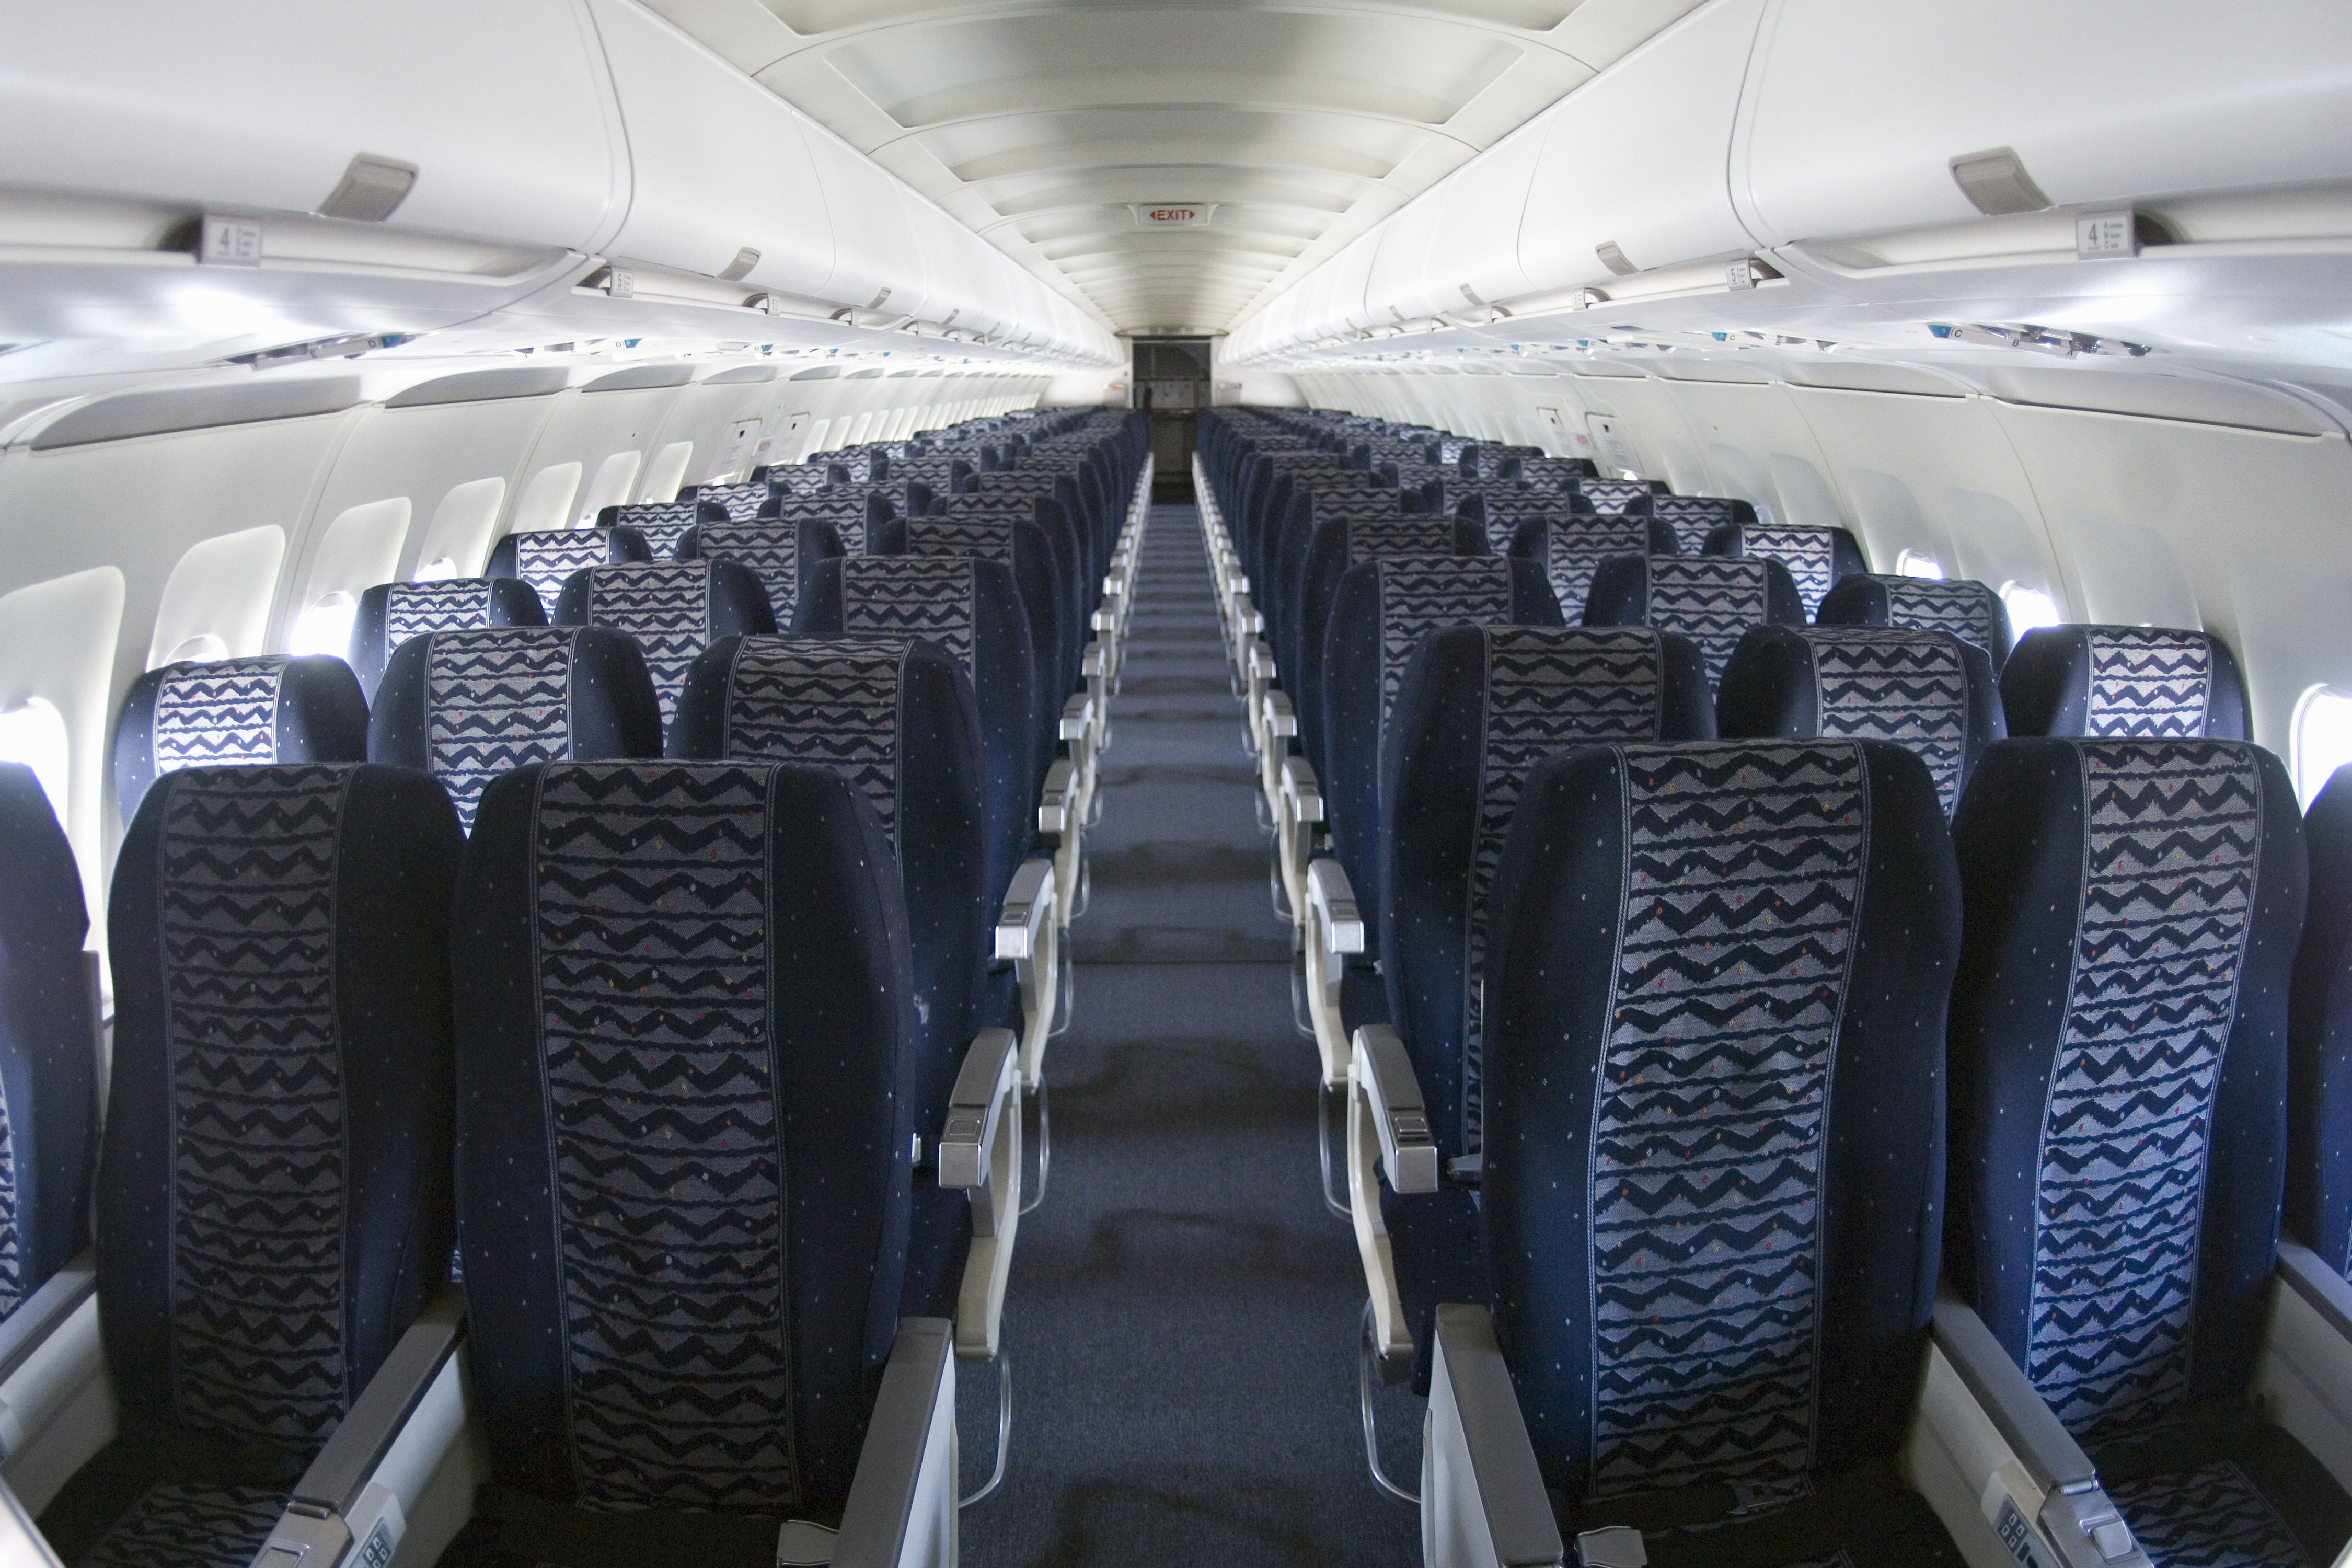 WATCH: This Is the Actual Reason You Can't Recline Your Airplane Seat During Landing